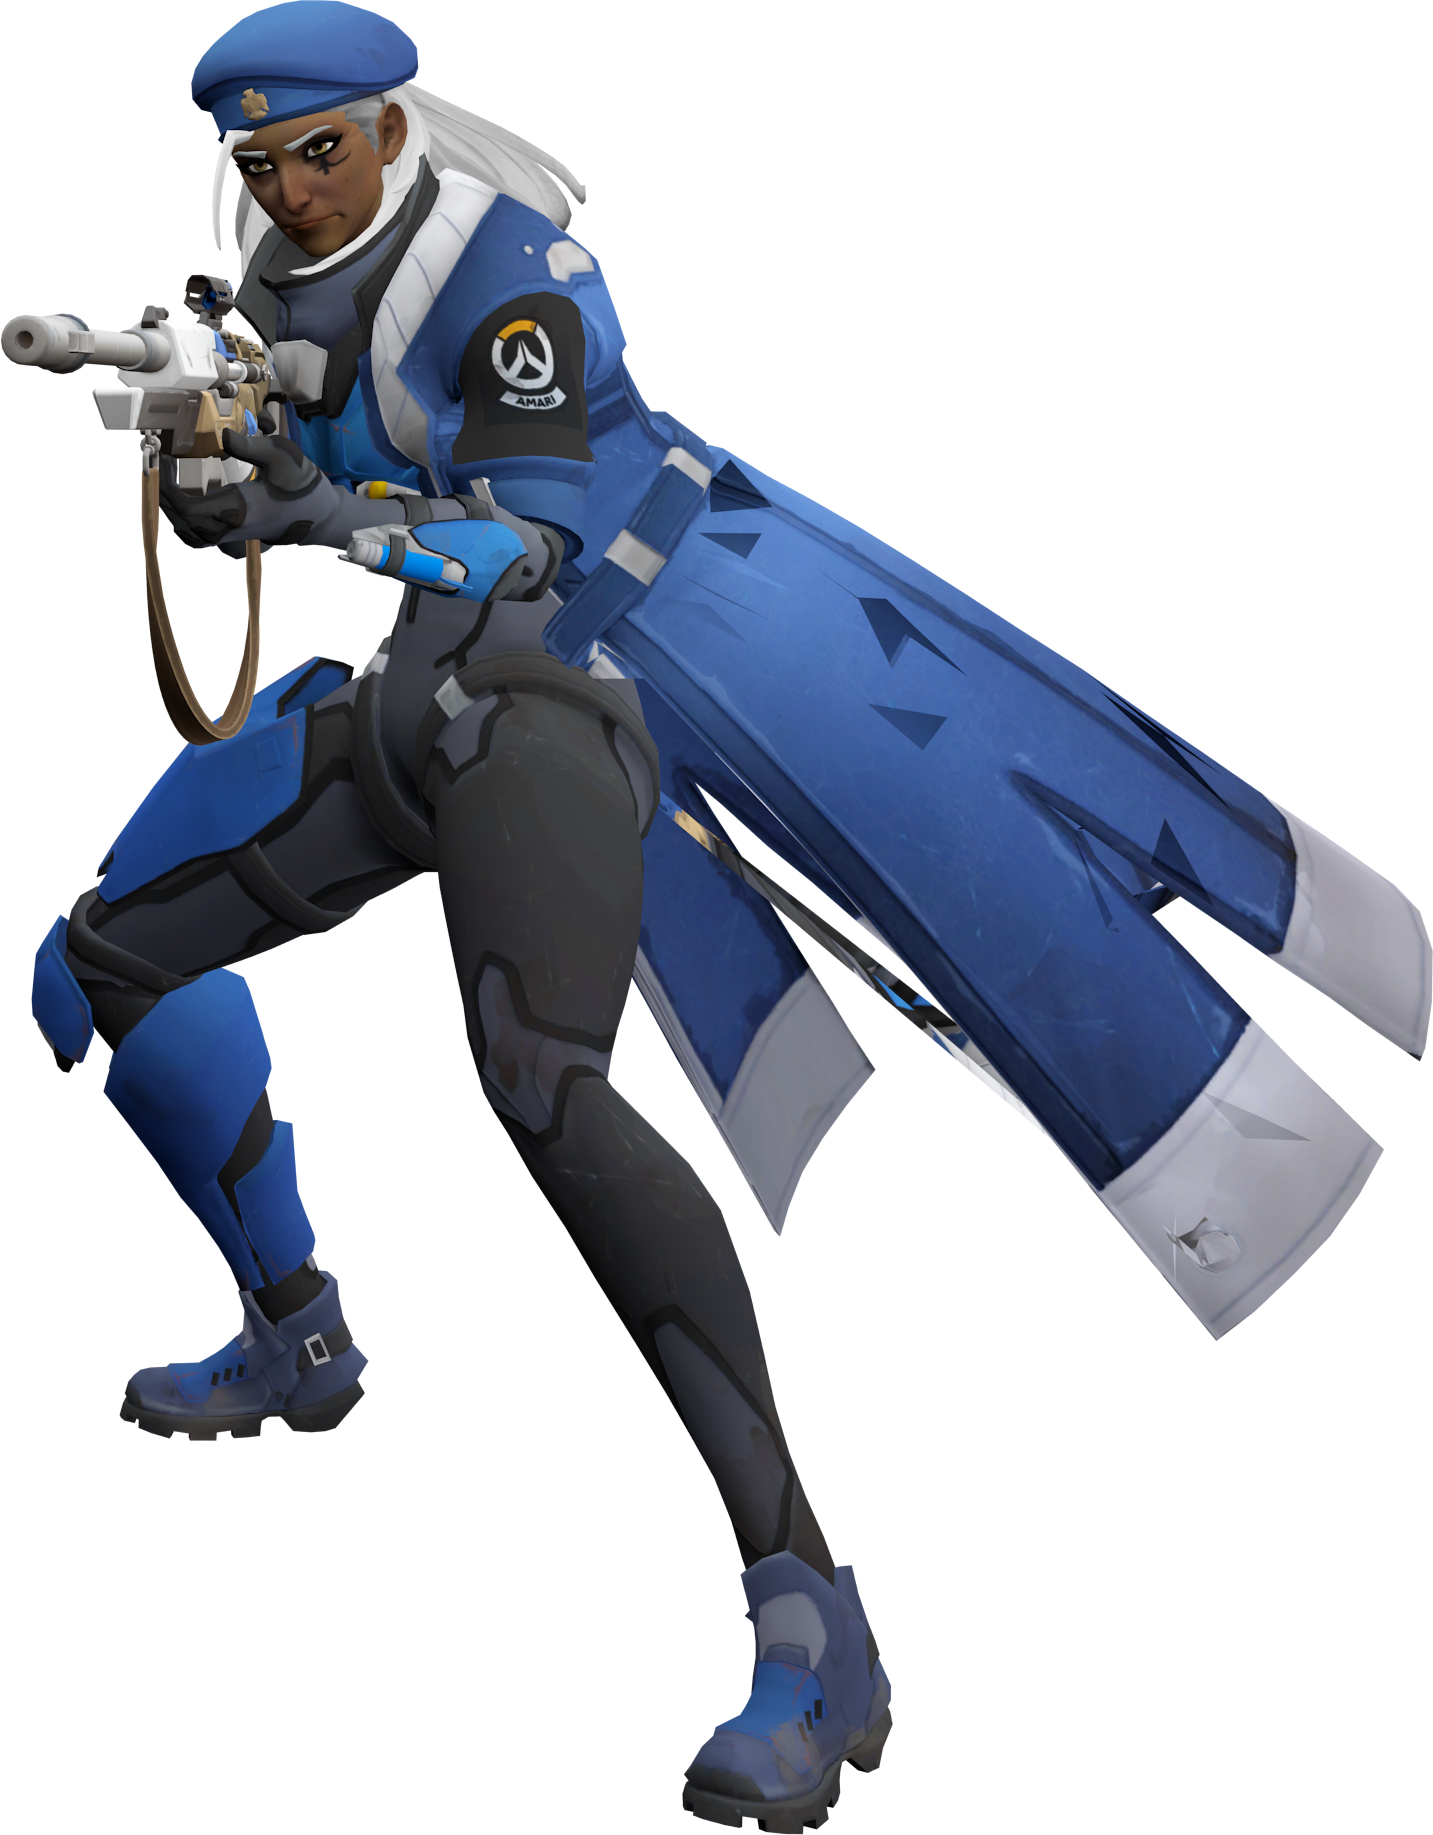 Ana overwatch png. From blender any ideas